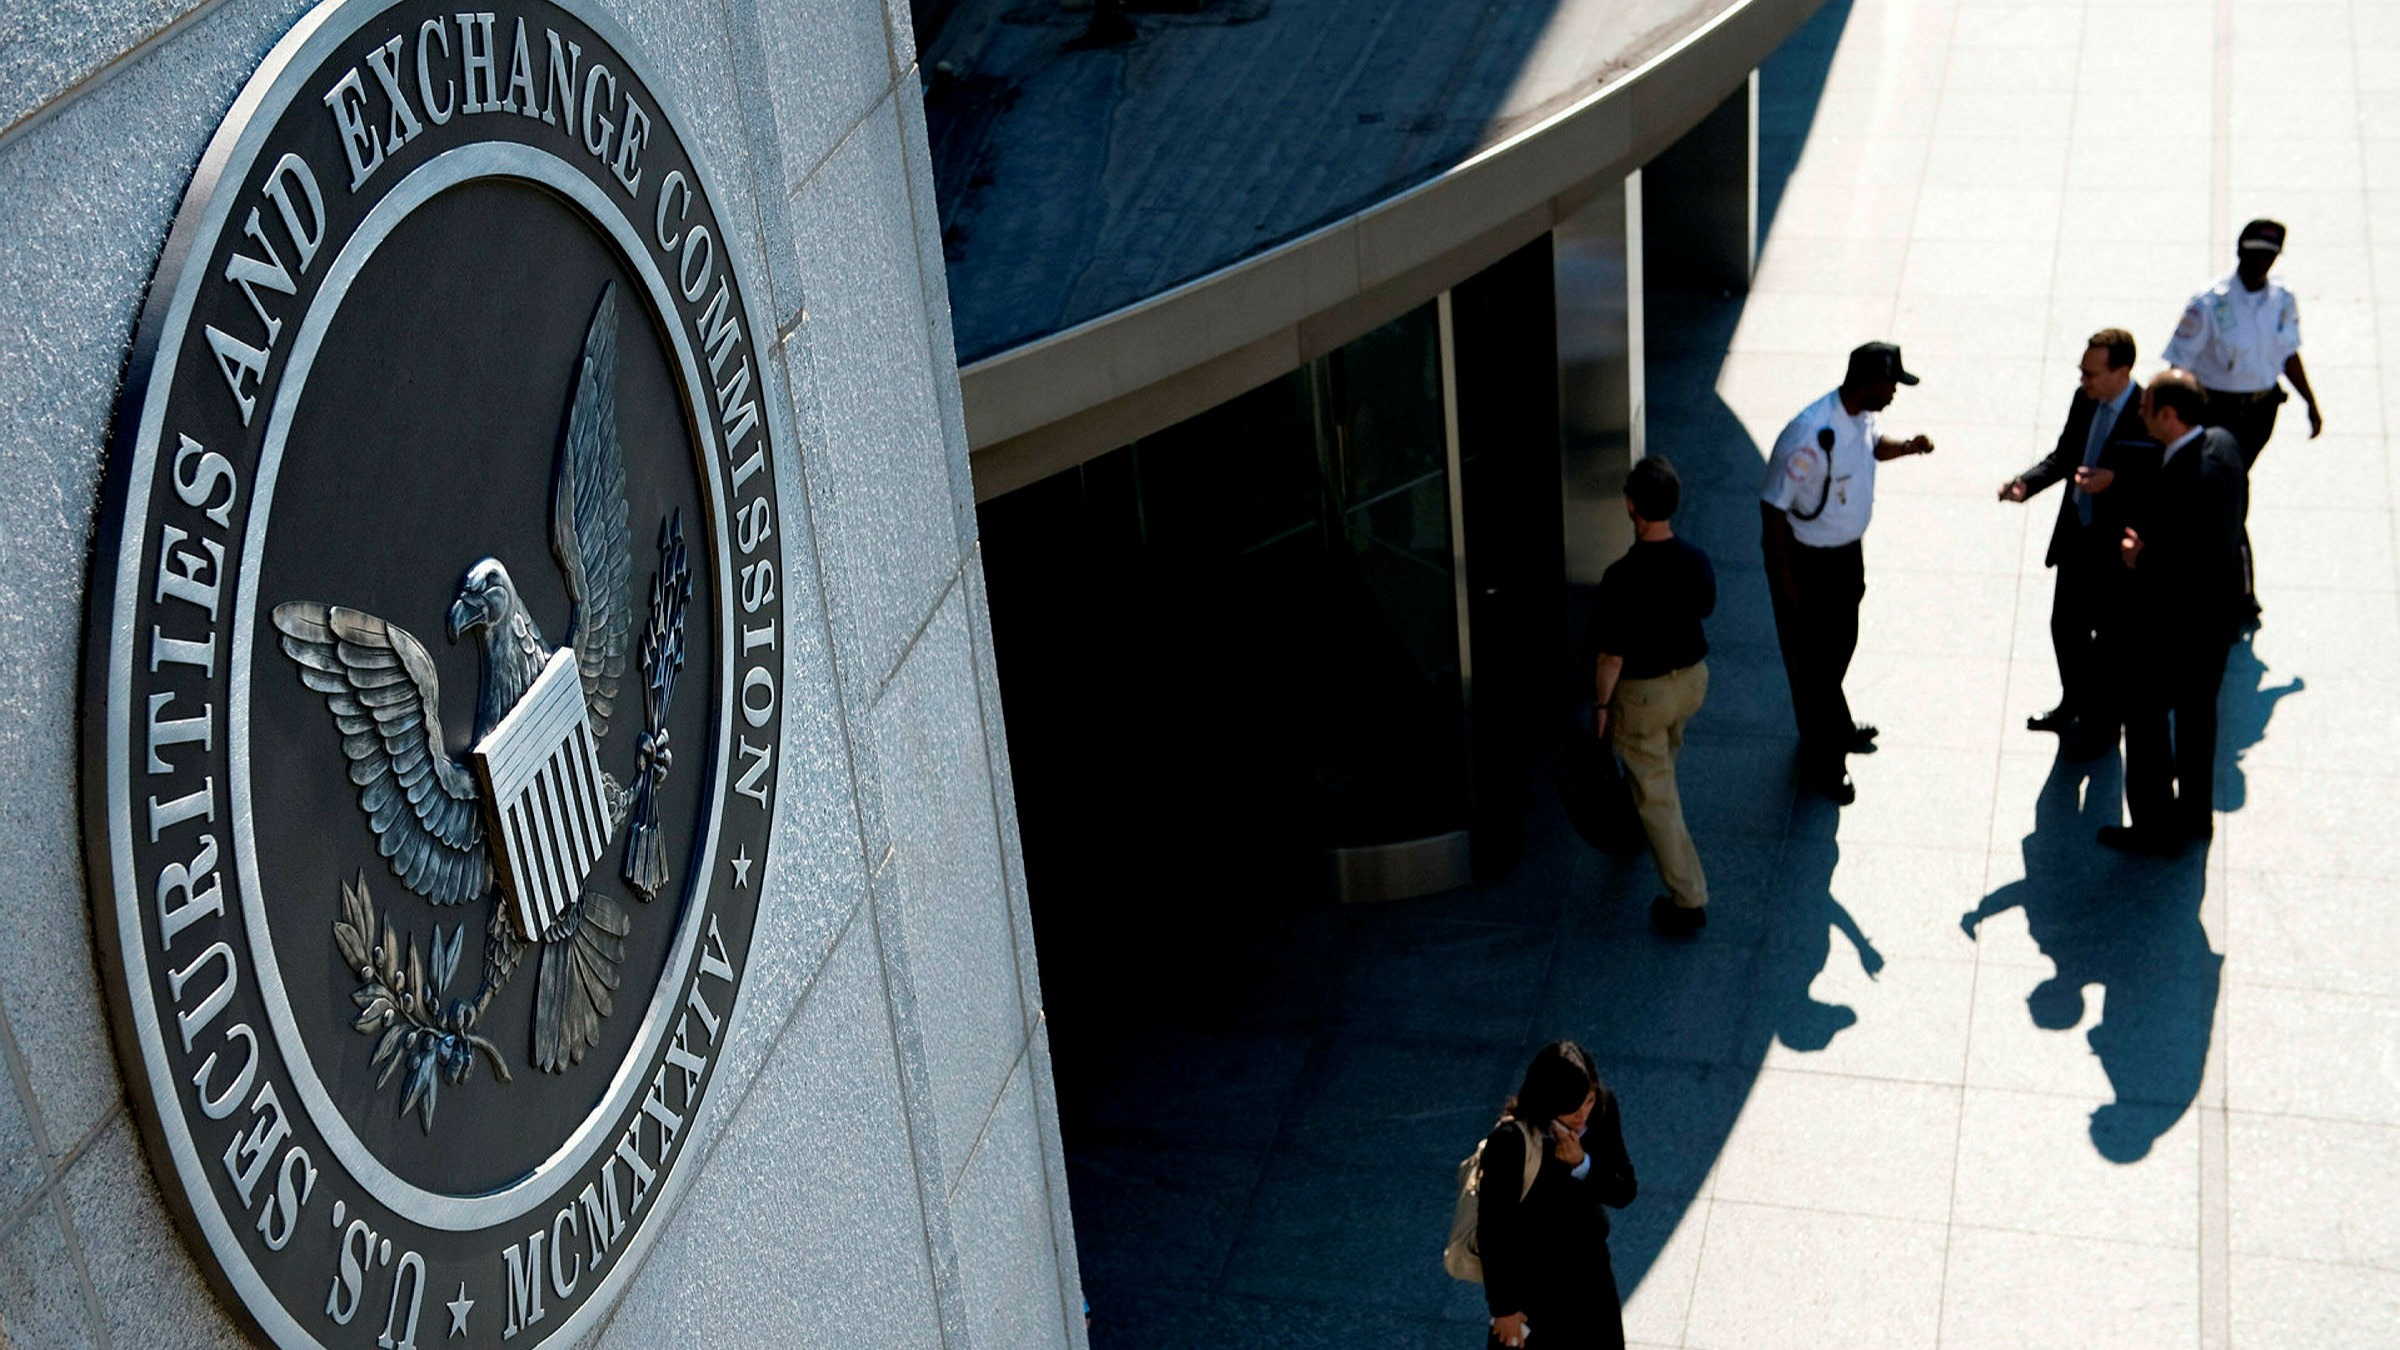 ft.com - Chris Flood - Buyout groups blasted at SEC meeting for 'misleading numbers'